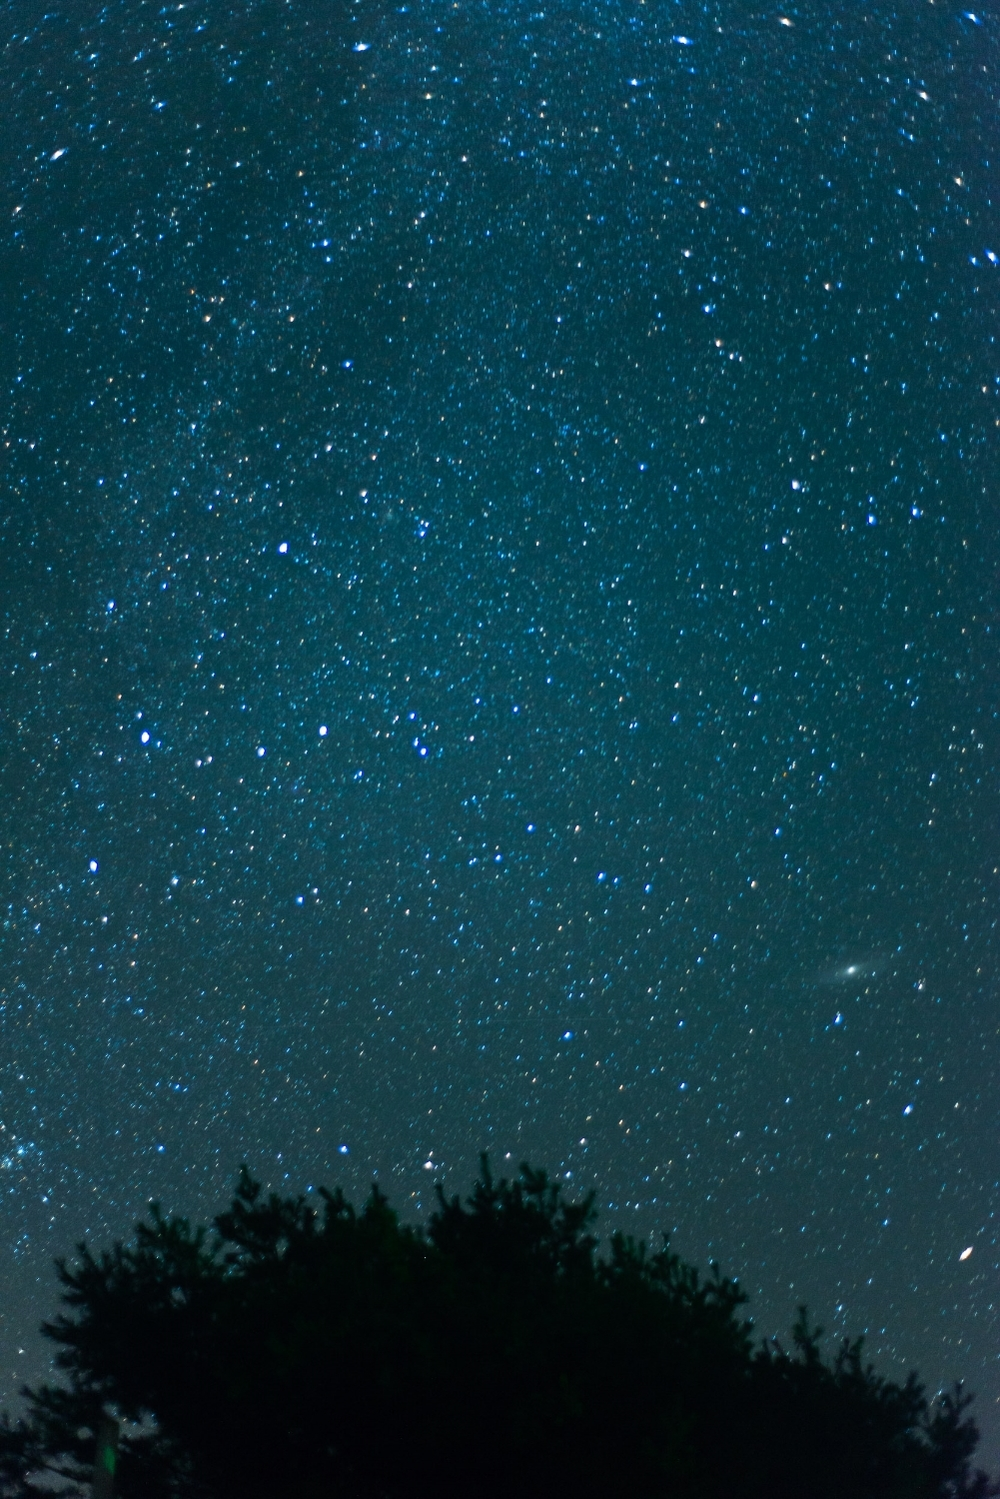 travel-photography-maine-night-stars-astro-landscape-photography-long-exposure-long-island-ny-photographer-natural-light-digital-55.jpg